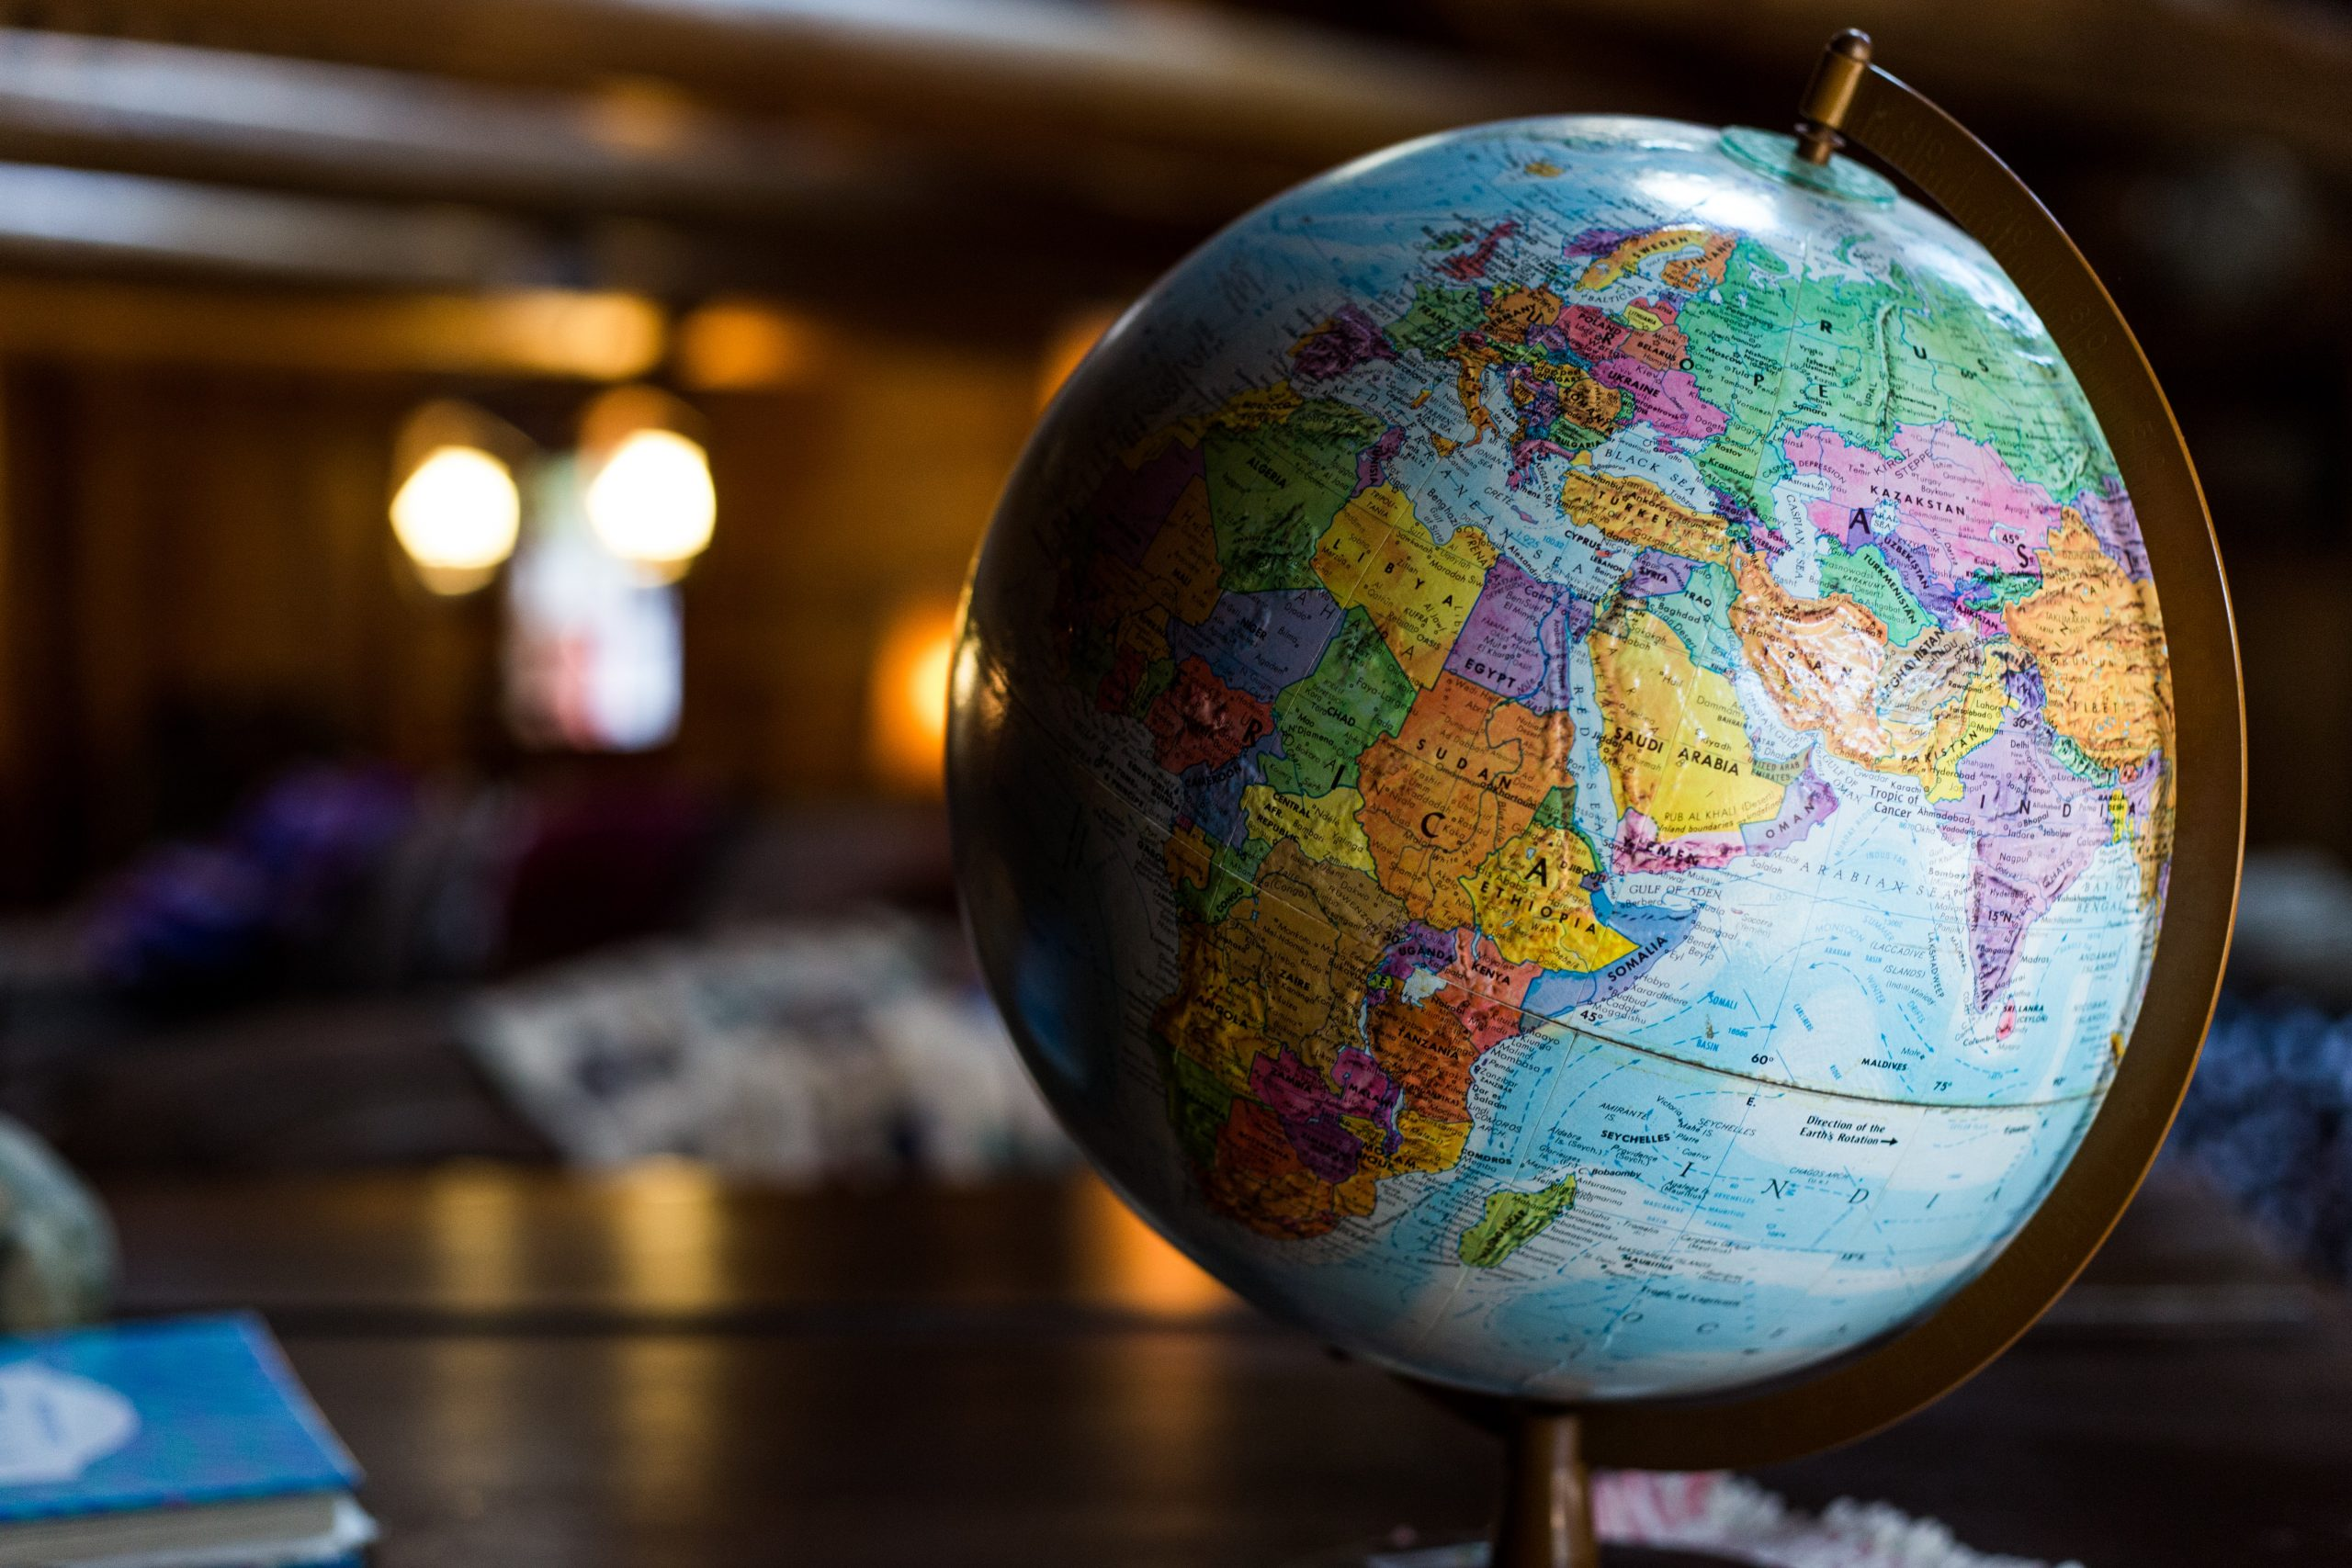 Global style is easy to find at Nashville's best antique mall.